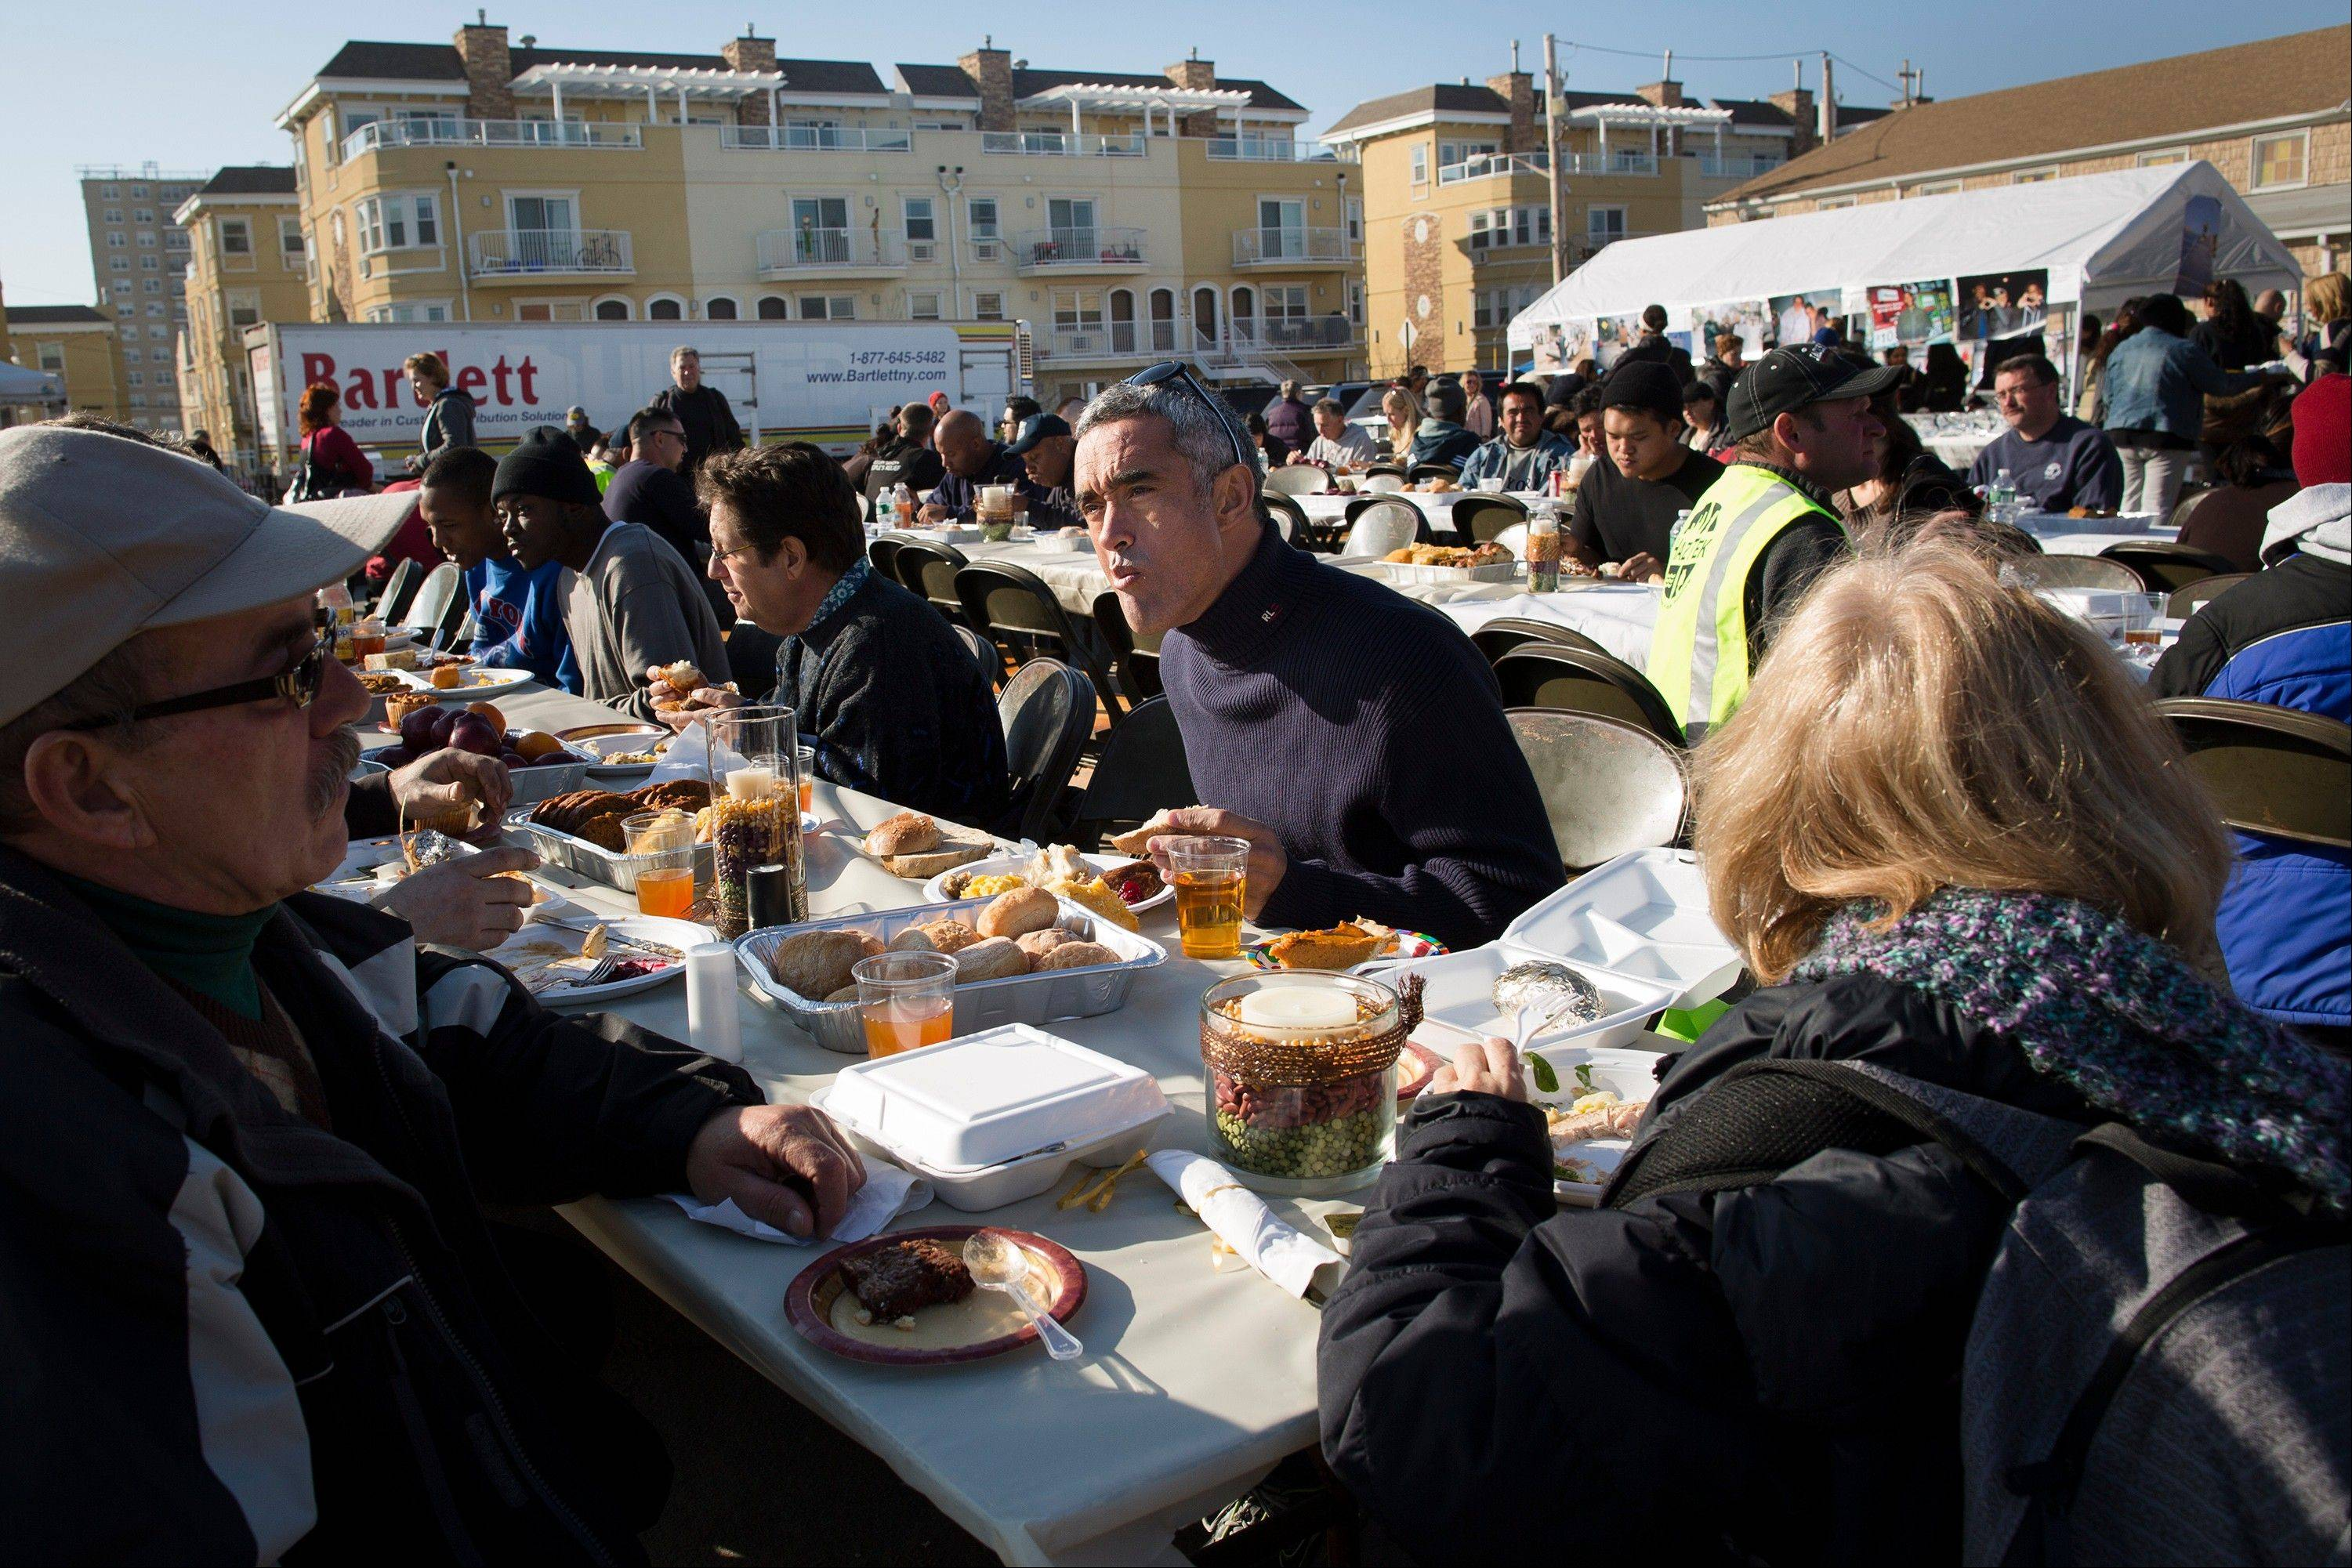 Denis Magoolaghan, 67, enjoys a free Thanksgiving dinner in the Rockaways section of Queens Thursday in New York. Portions of the Northeast are still reeling from Sandy's havoc, and volunteers served thousands of turkey dinners to people it left homeless or struggling.